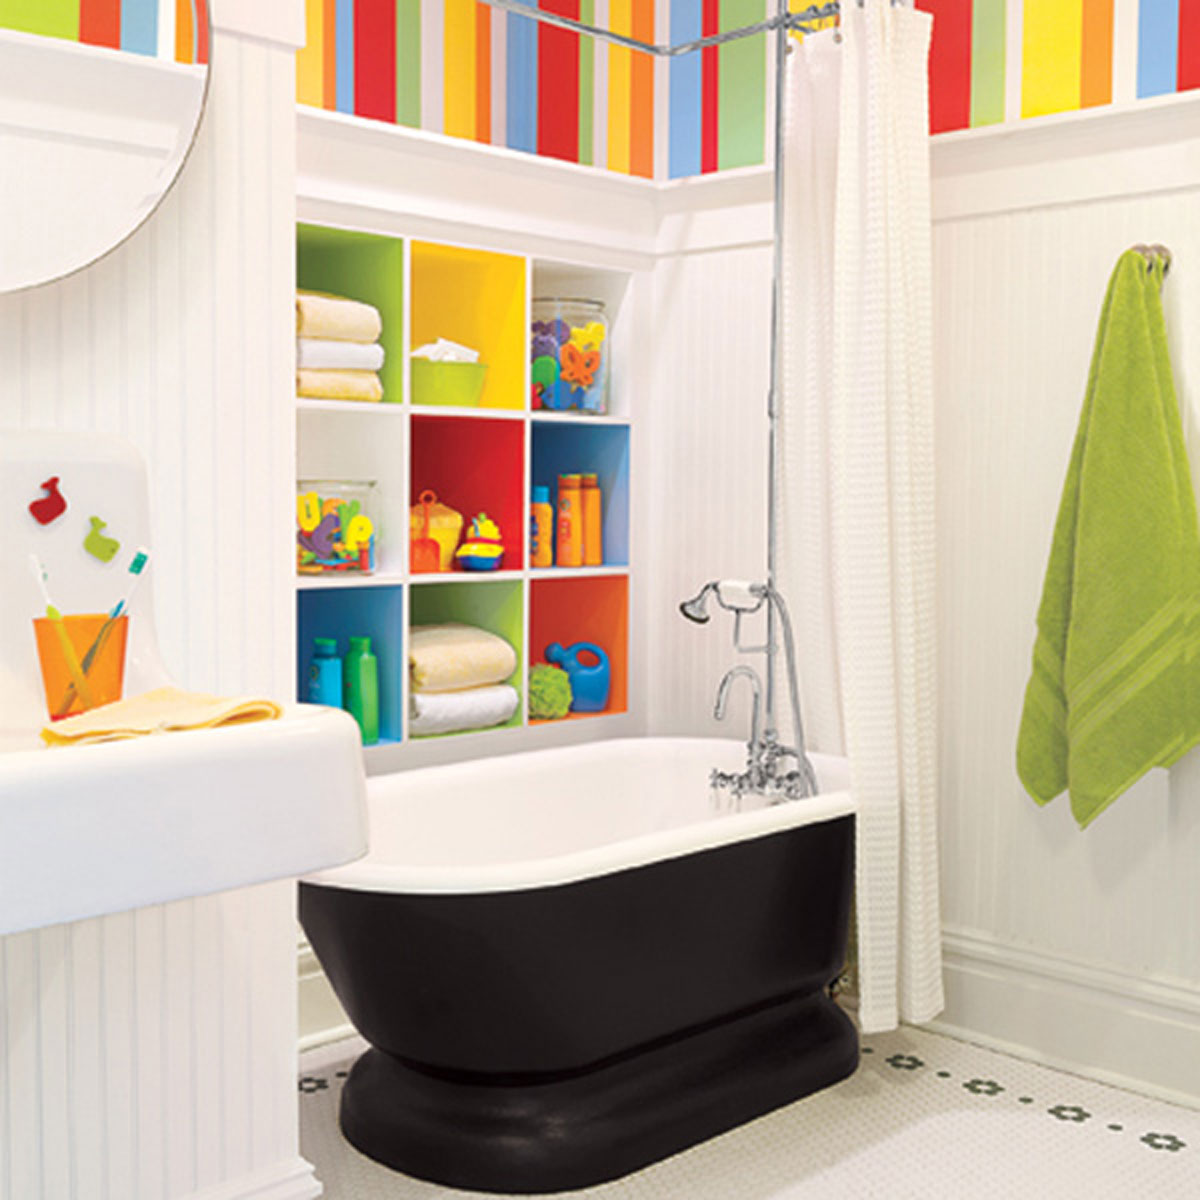 Modern kids bathroom furniture 6162 for Cool cheap bathroom ideas